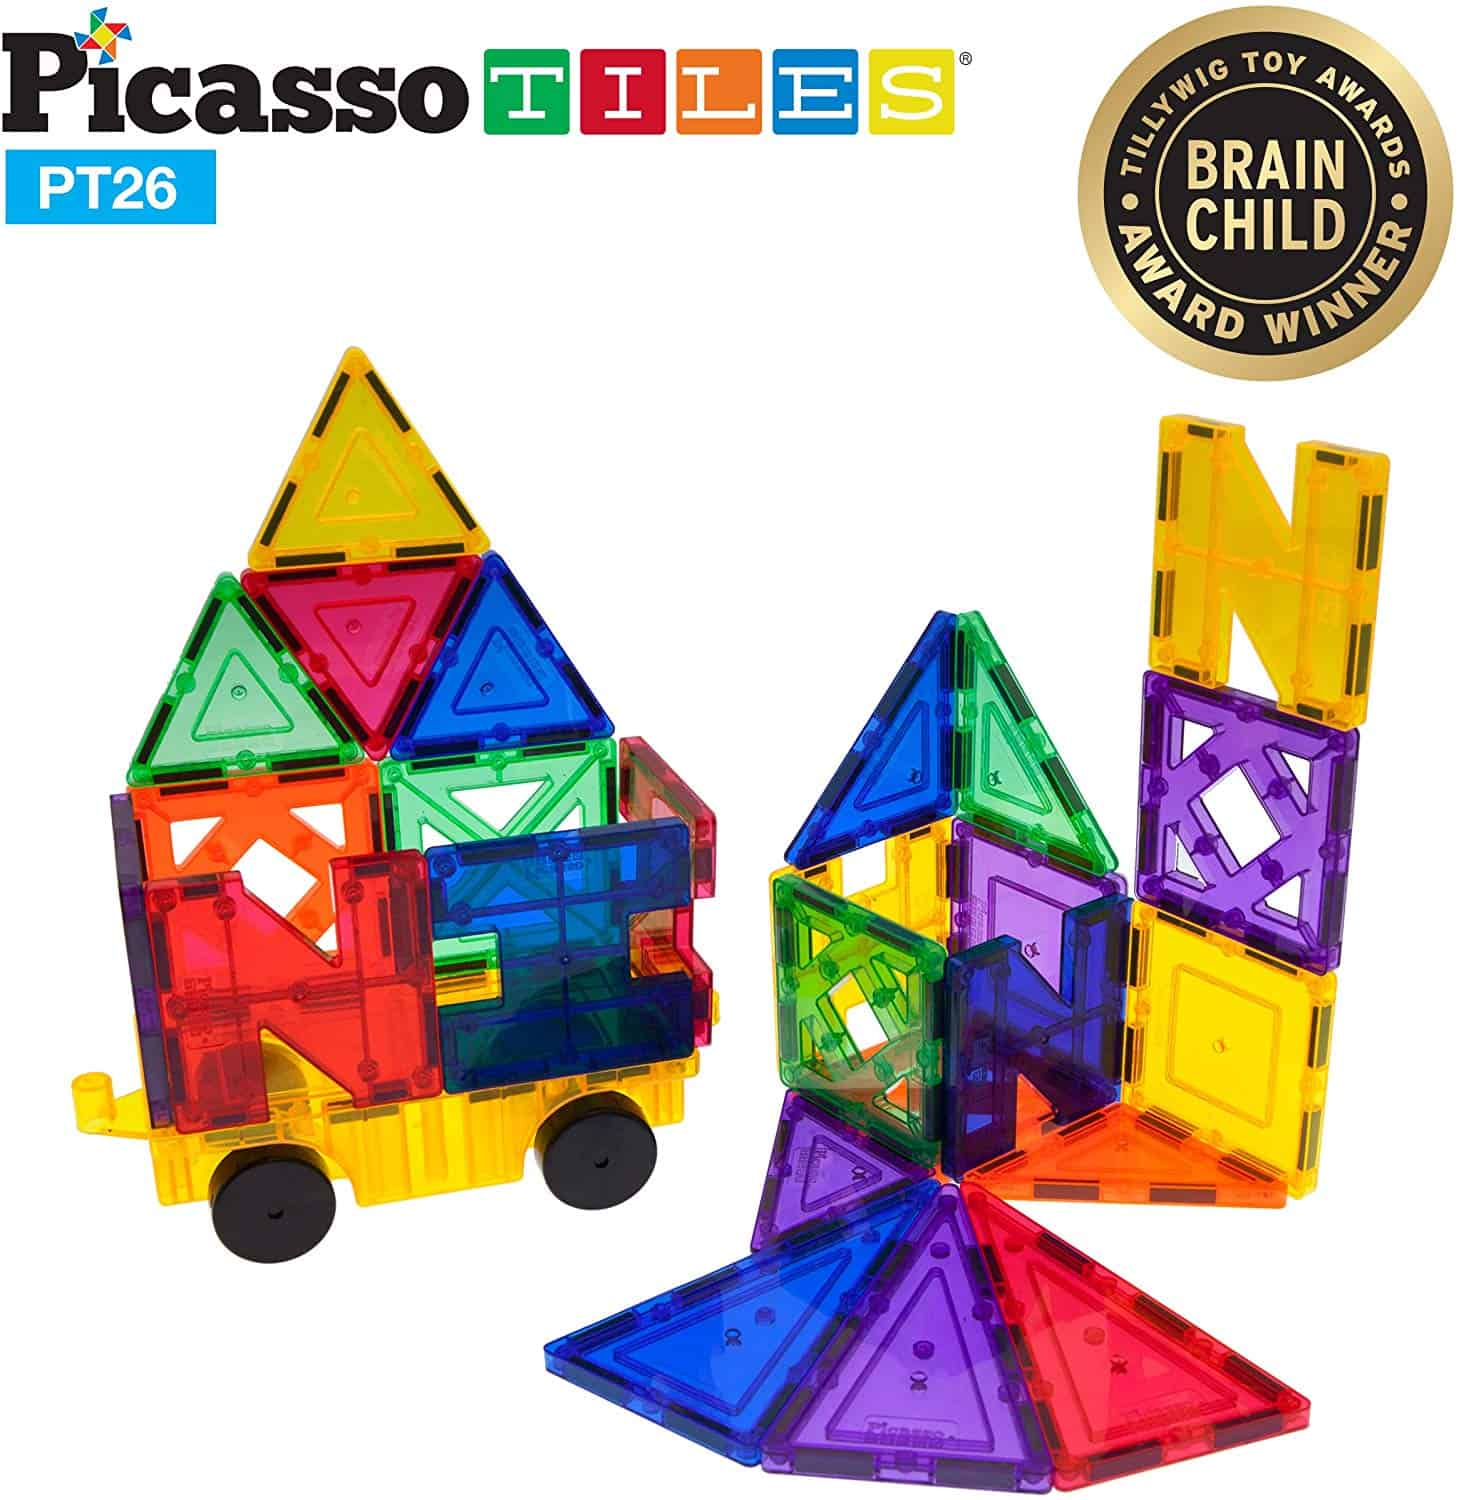 PicassoTiles PT26 Inspirational Set Magnet Building Tiles